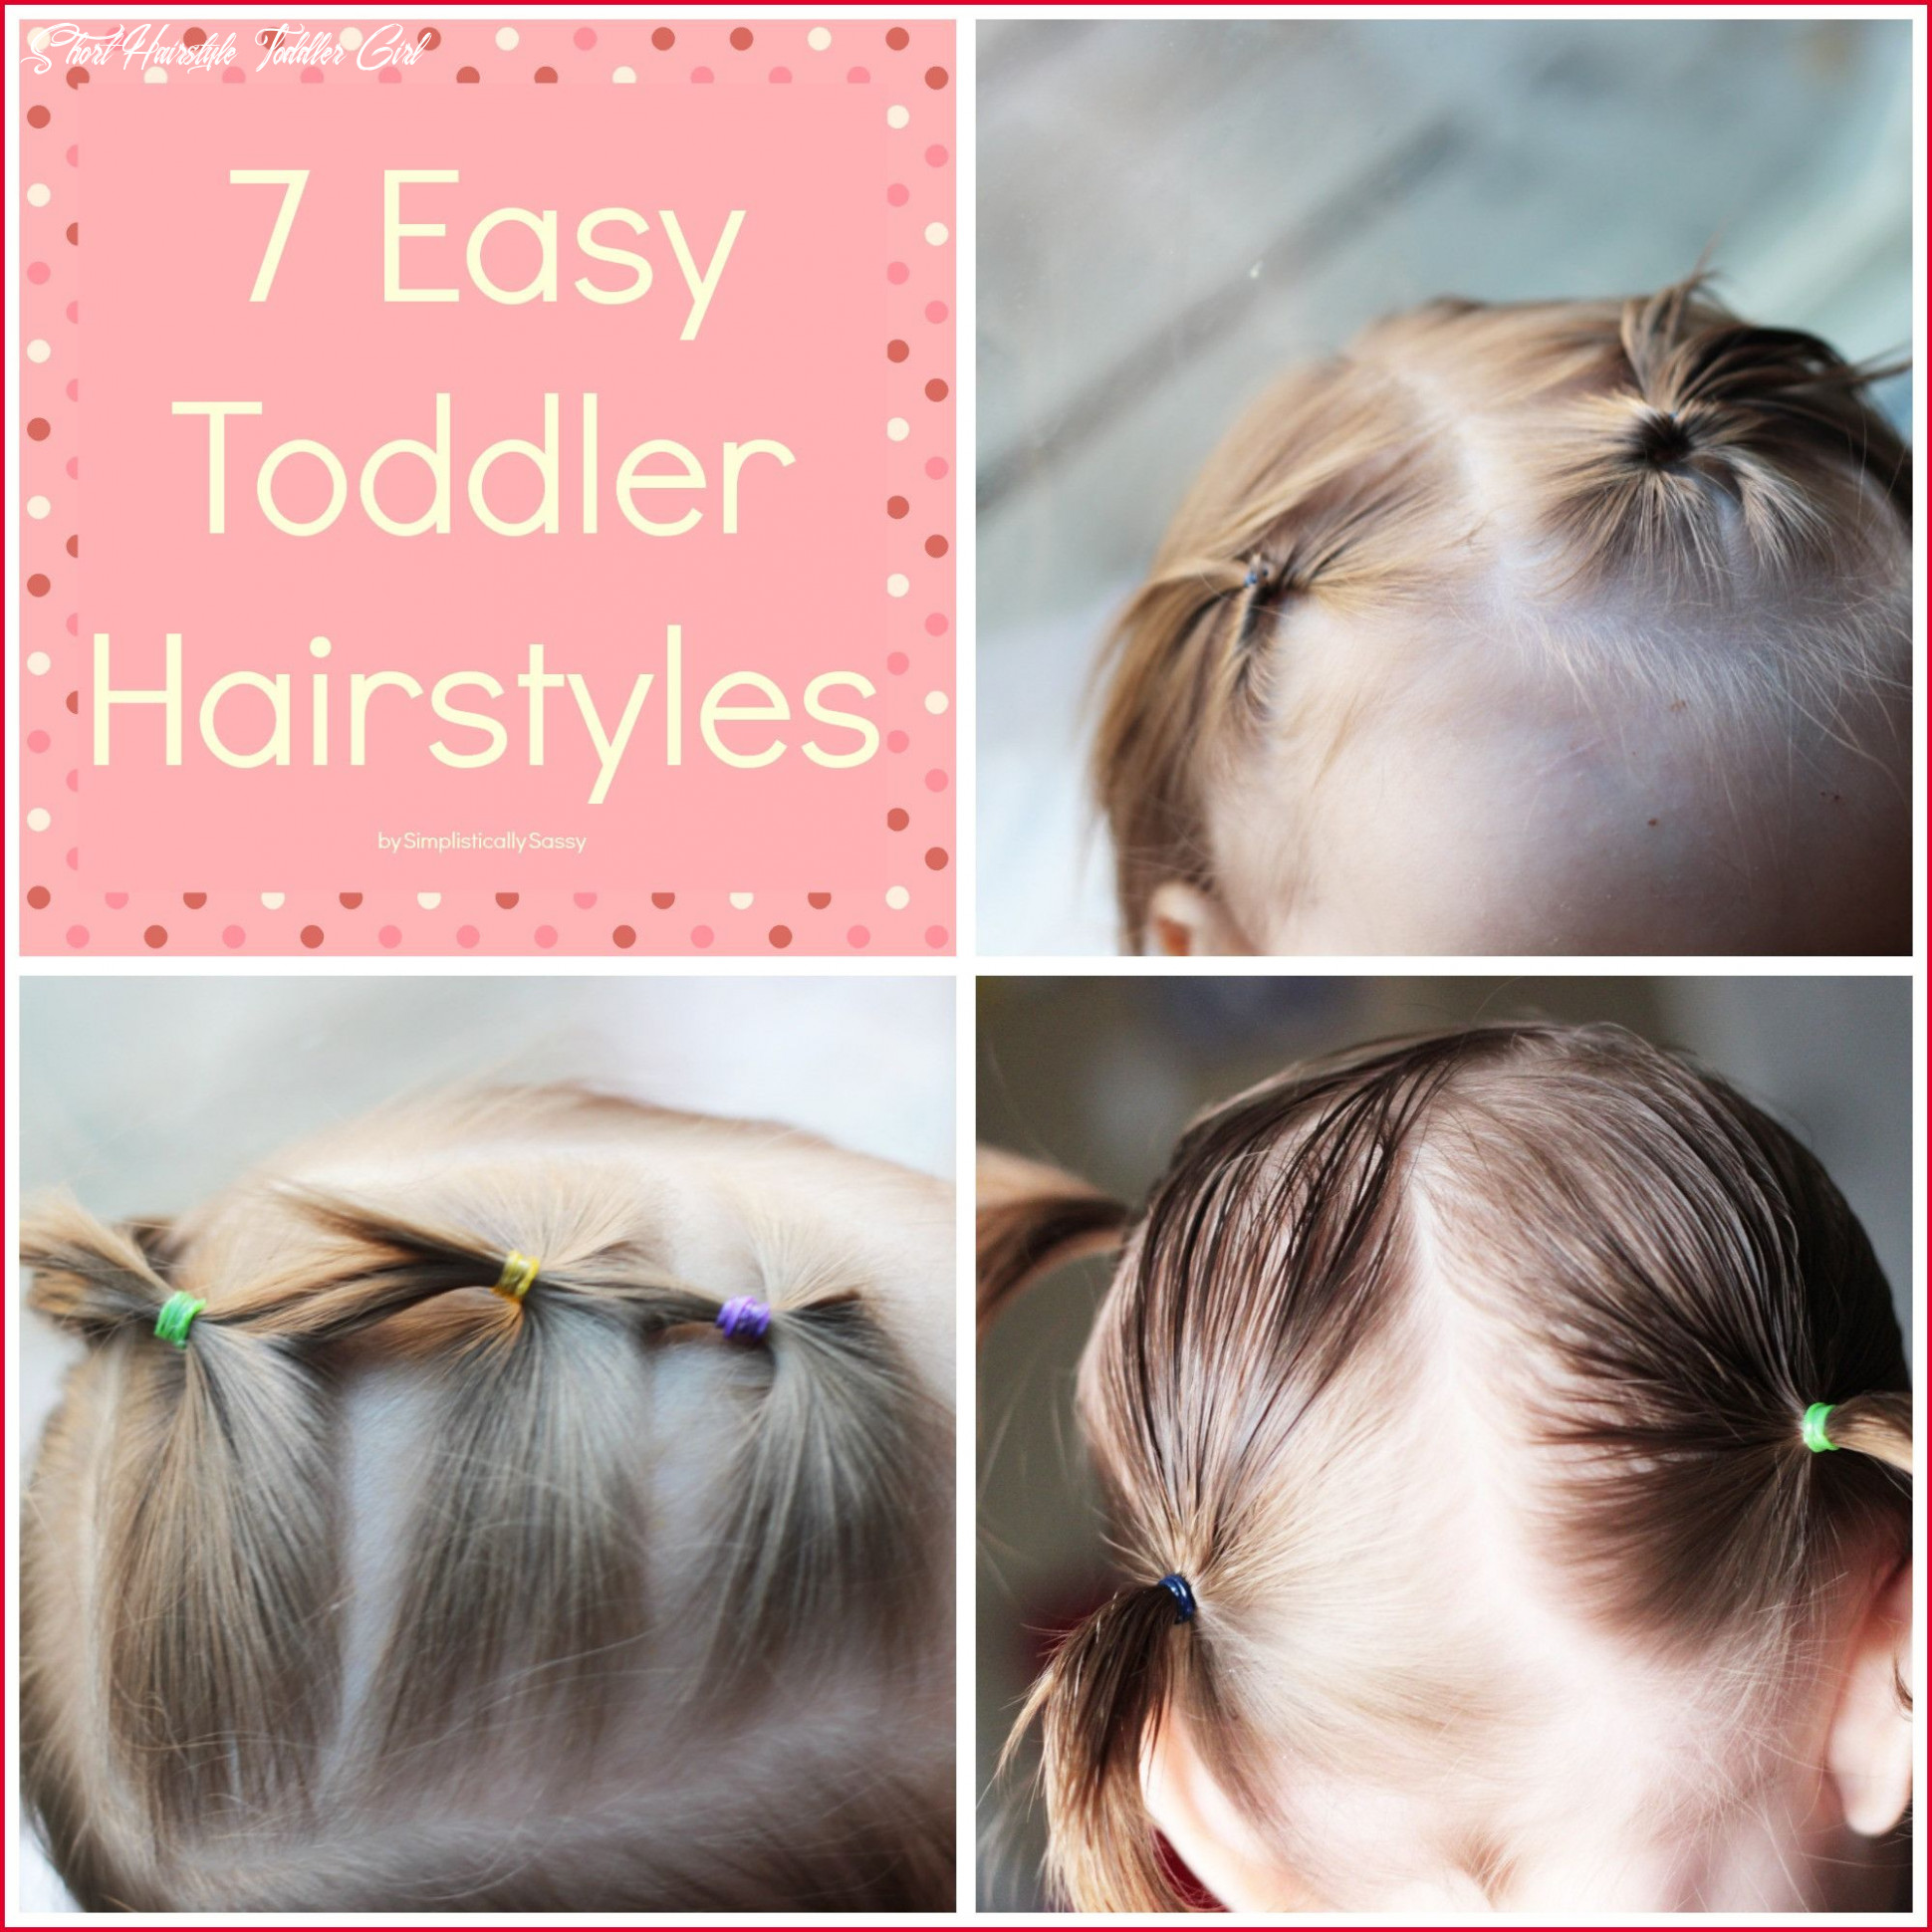 Top toddler hairstyles for short hair photos of short hairstyles